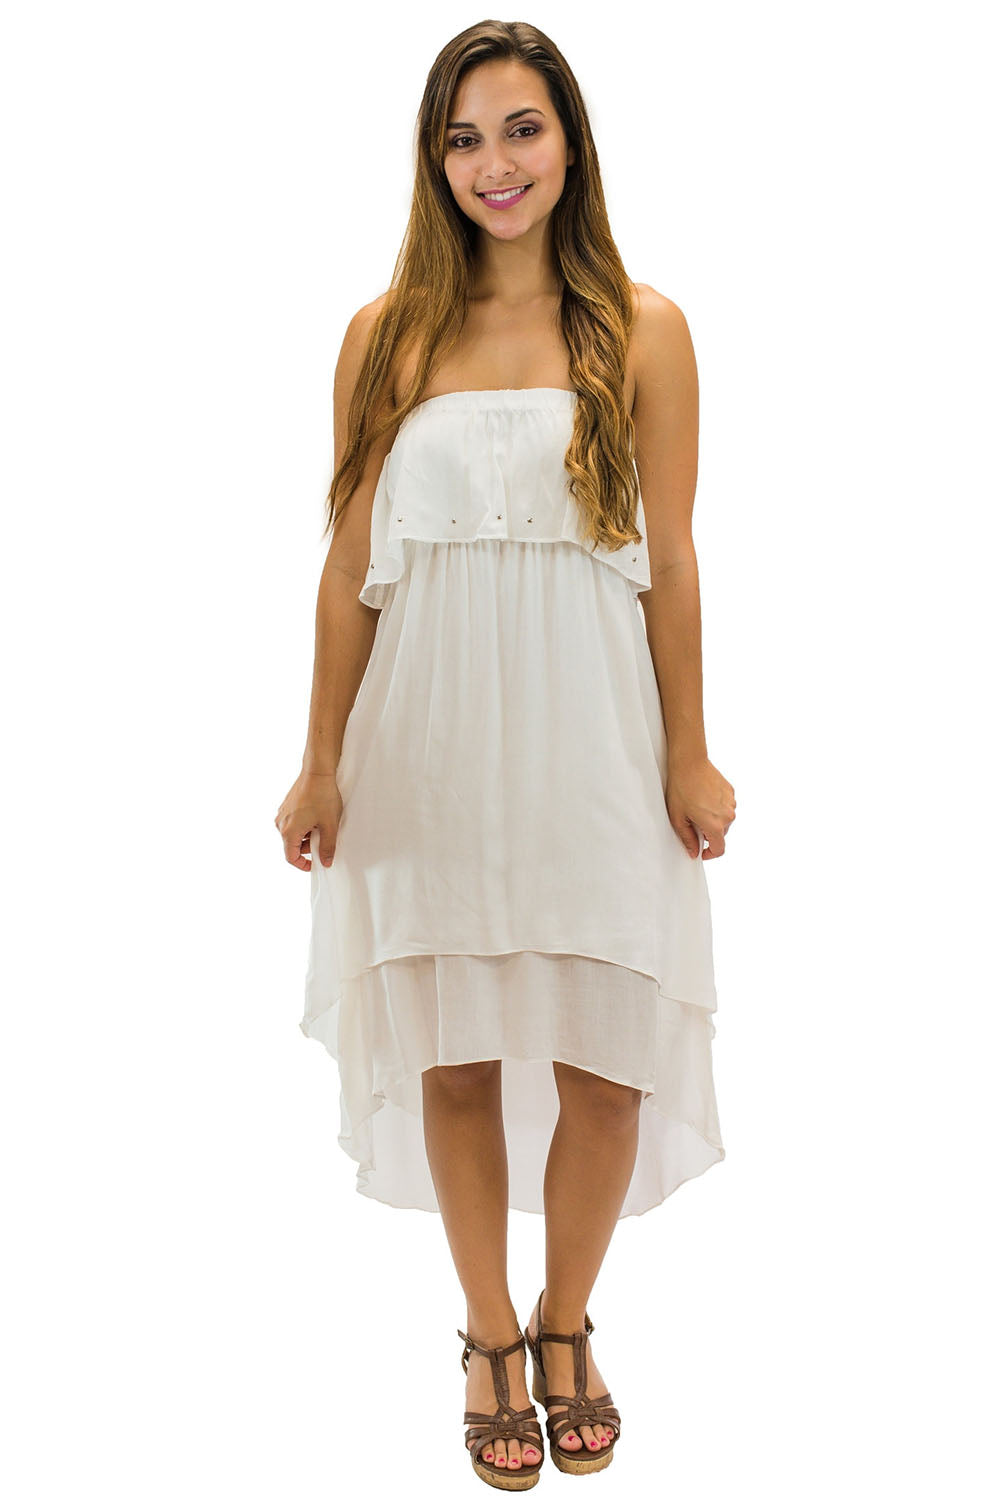 Kailua Dress White